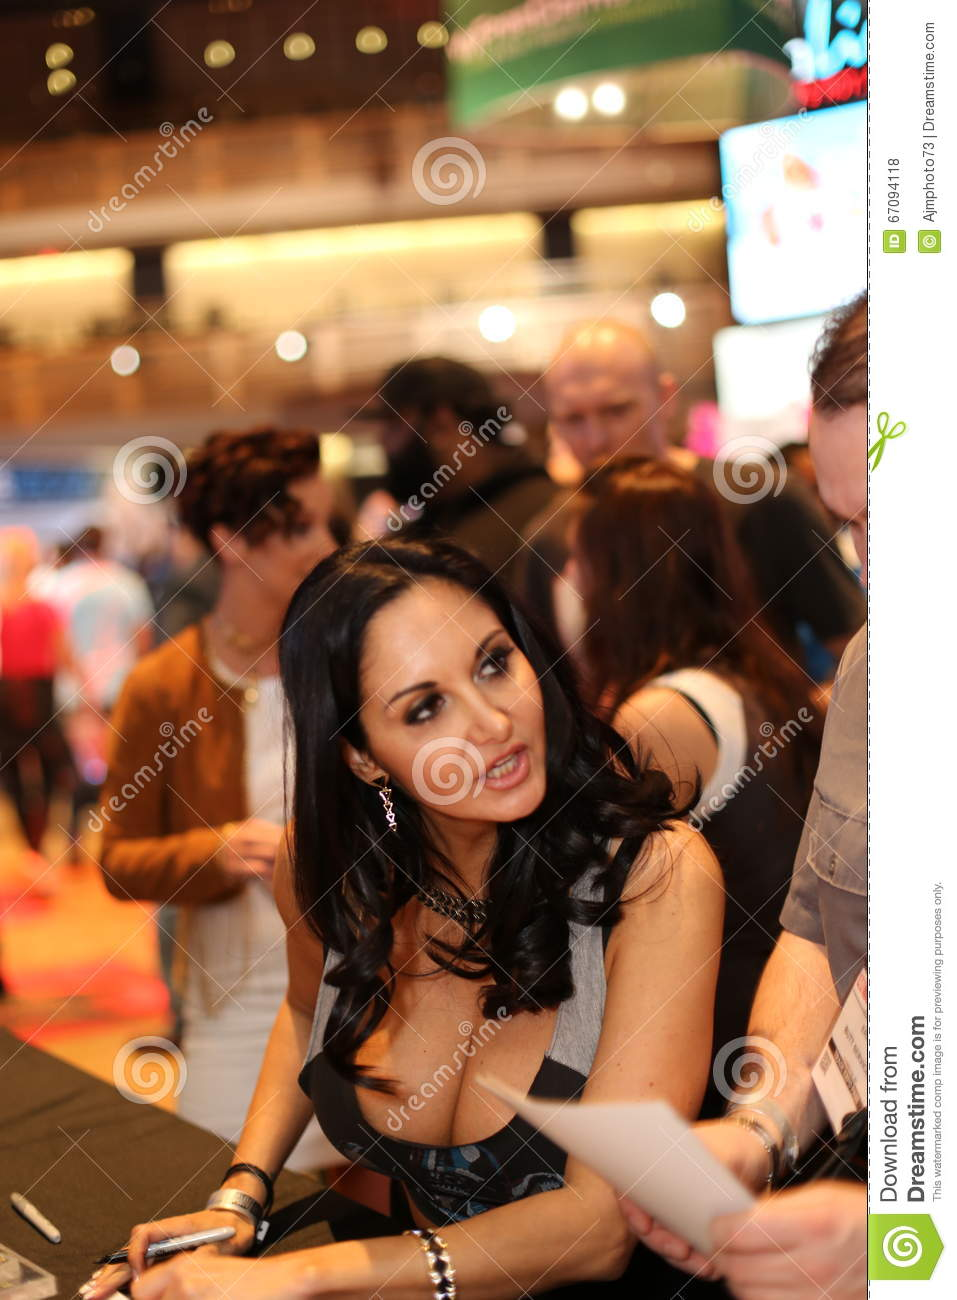 avn expo 2016 las vegas editorial stock photo. image of show - 67094118